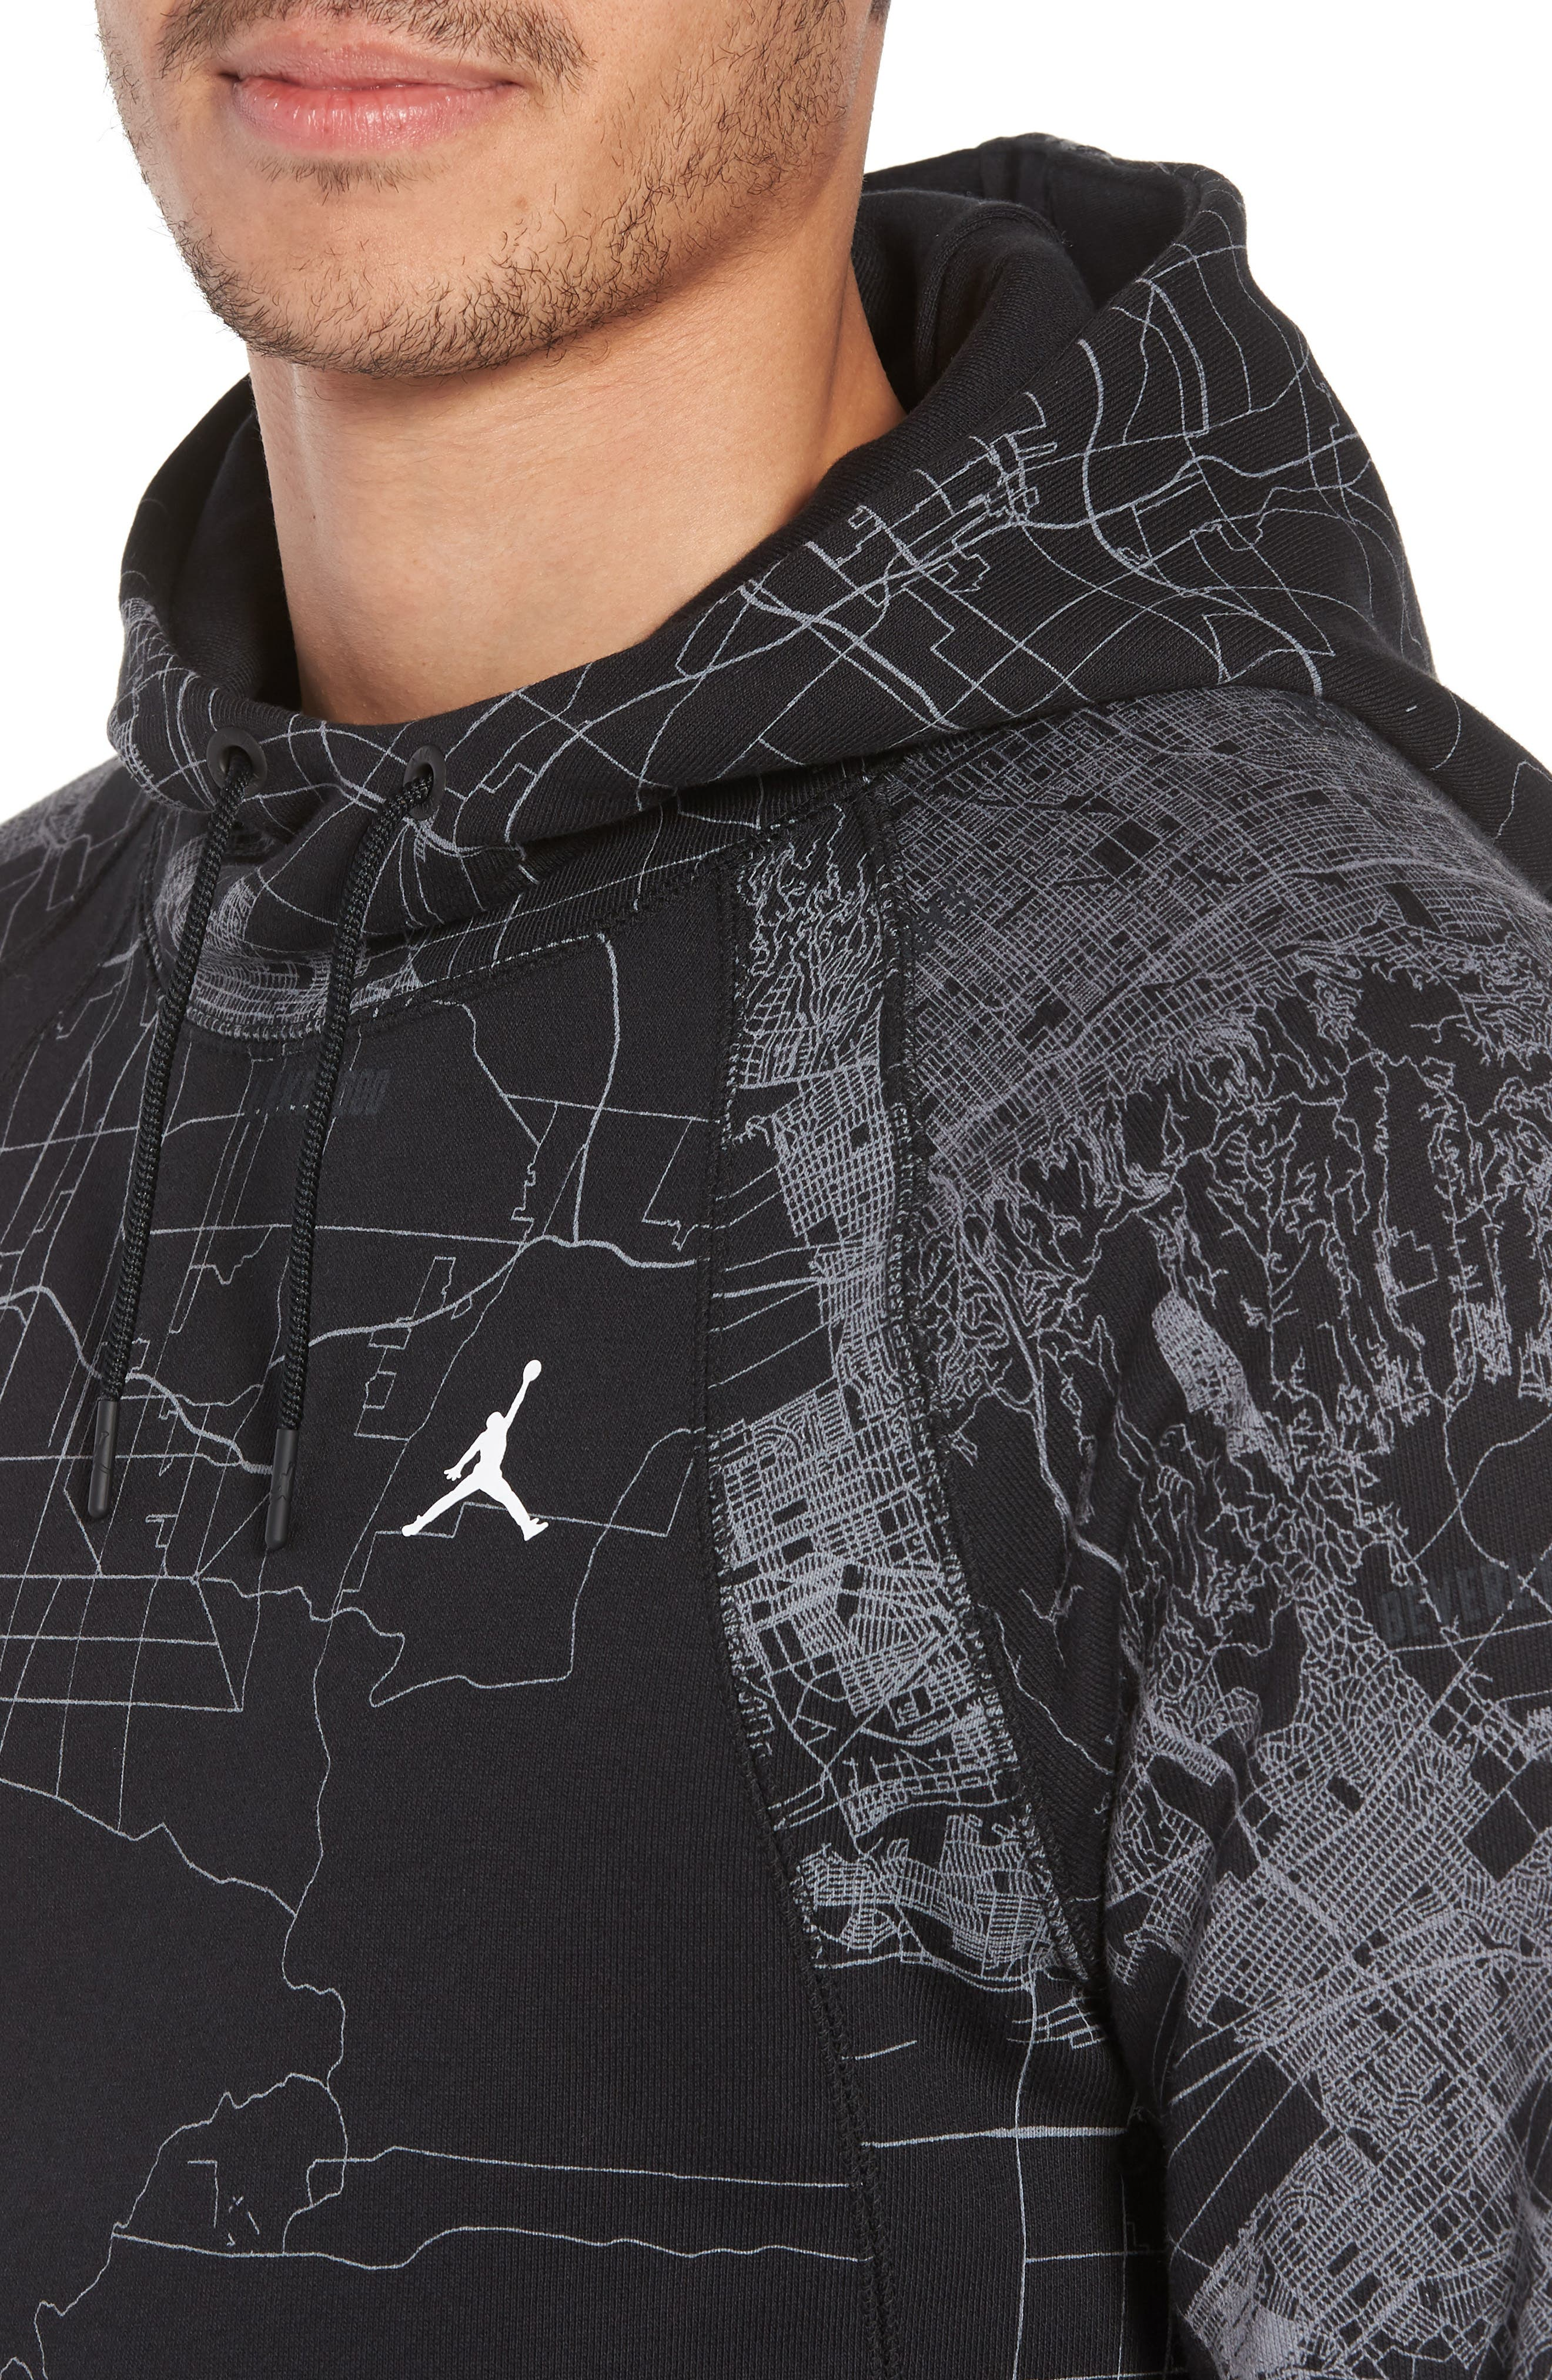 Wings Graphic Hoodie,                             Alternate thumbnail 4, color,                             010